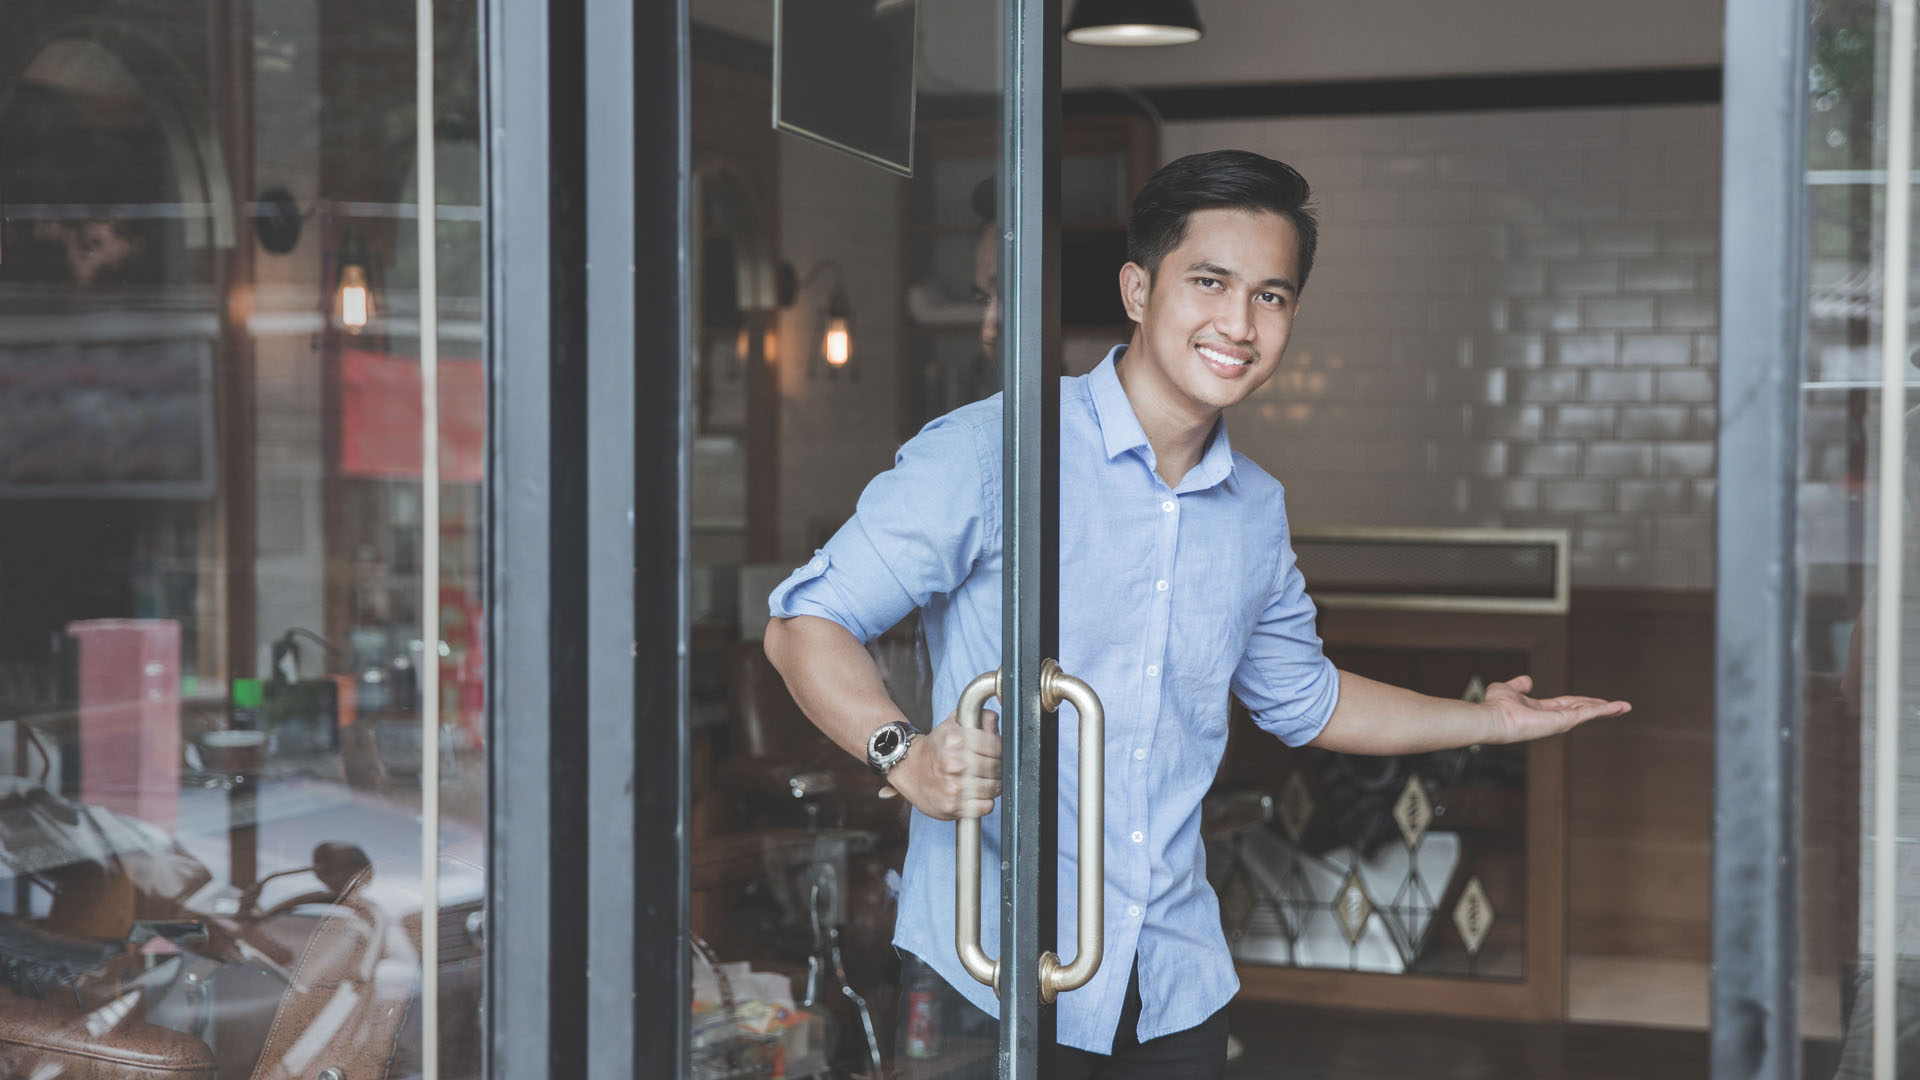 A small business owner holds the door open